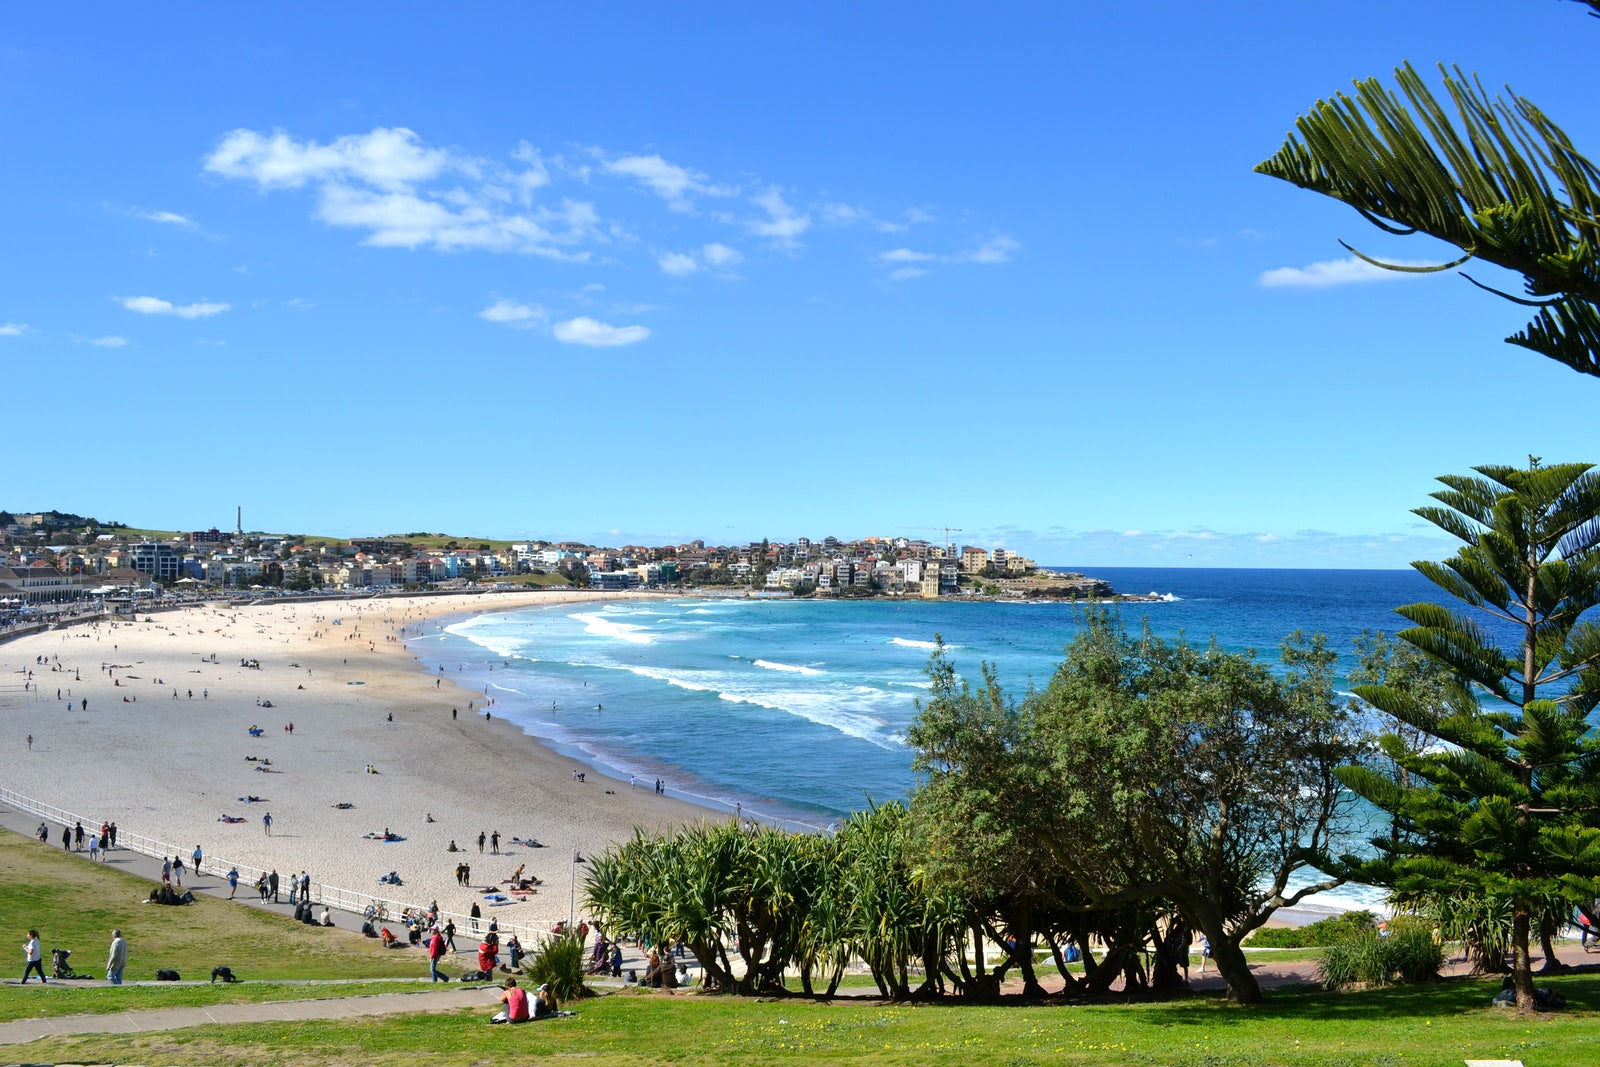 A picture of Bondi Beach located in Sydney